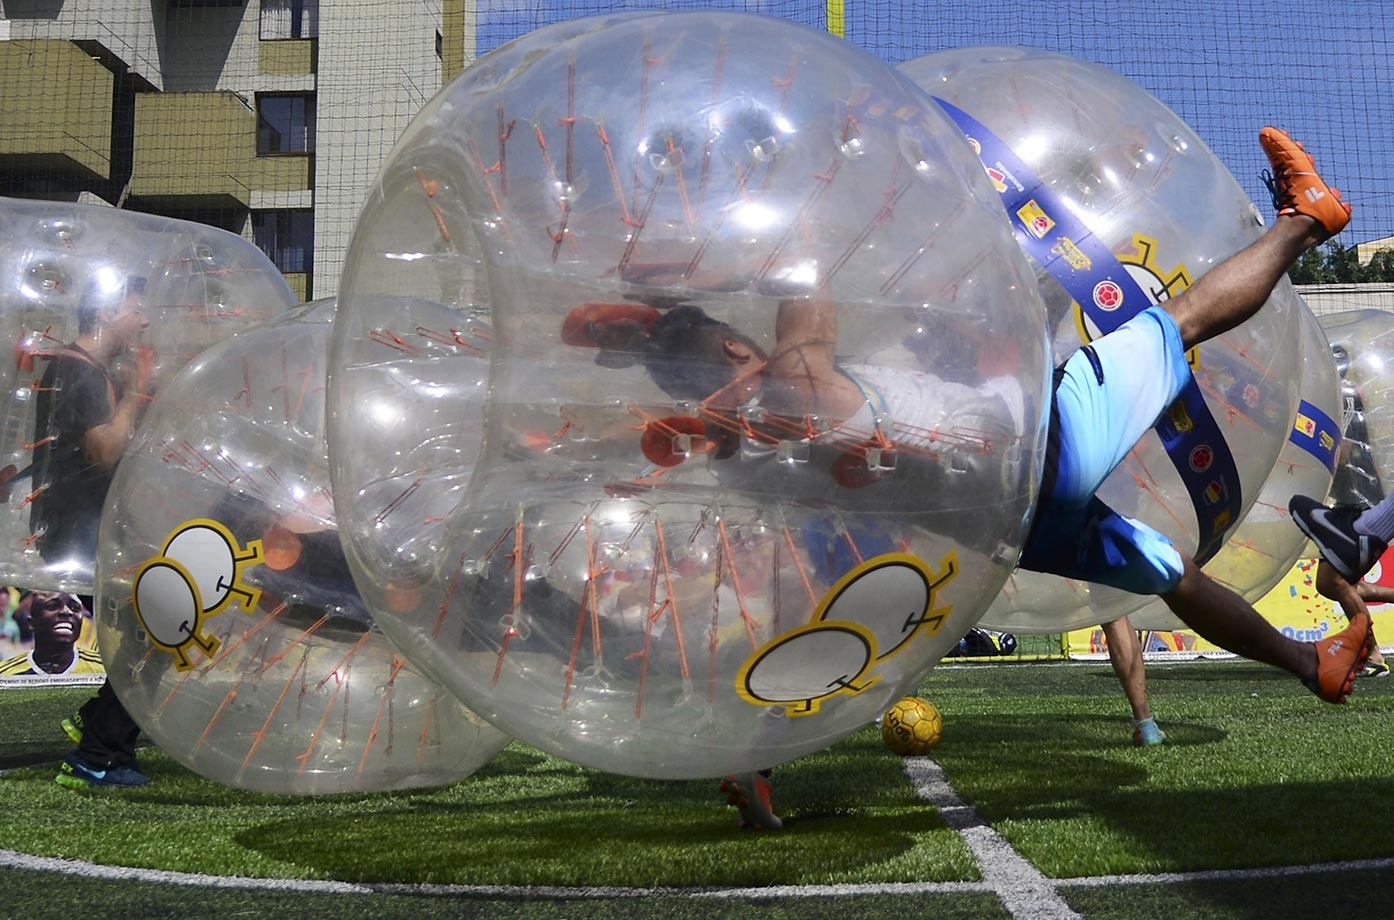 People in bubble balls play a five-on-five game of bubble-soccer in Medellin, Colombia.  Bubble-soccer is already played in over 20 countries and has professional leagues around the world.